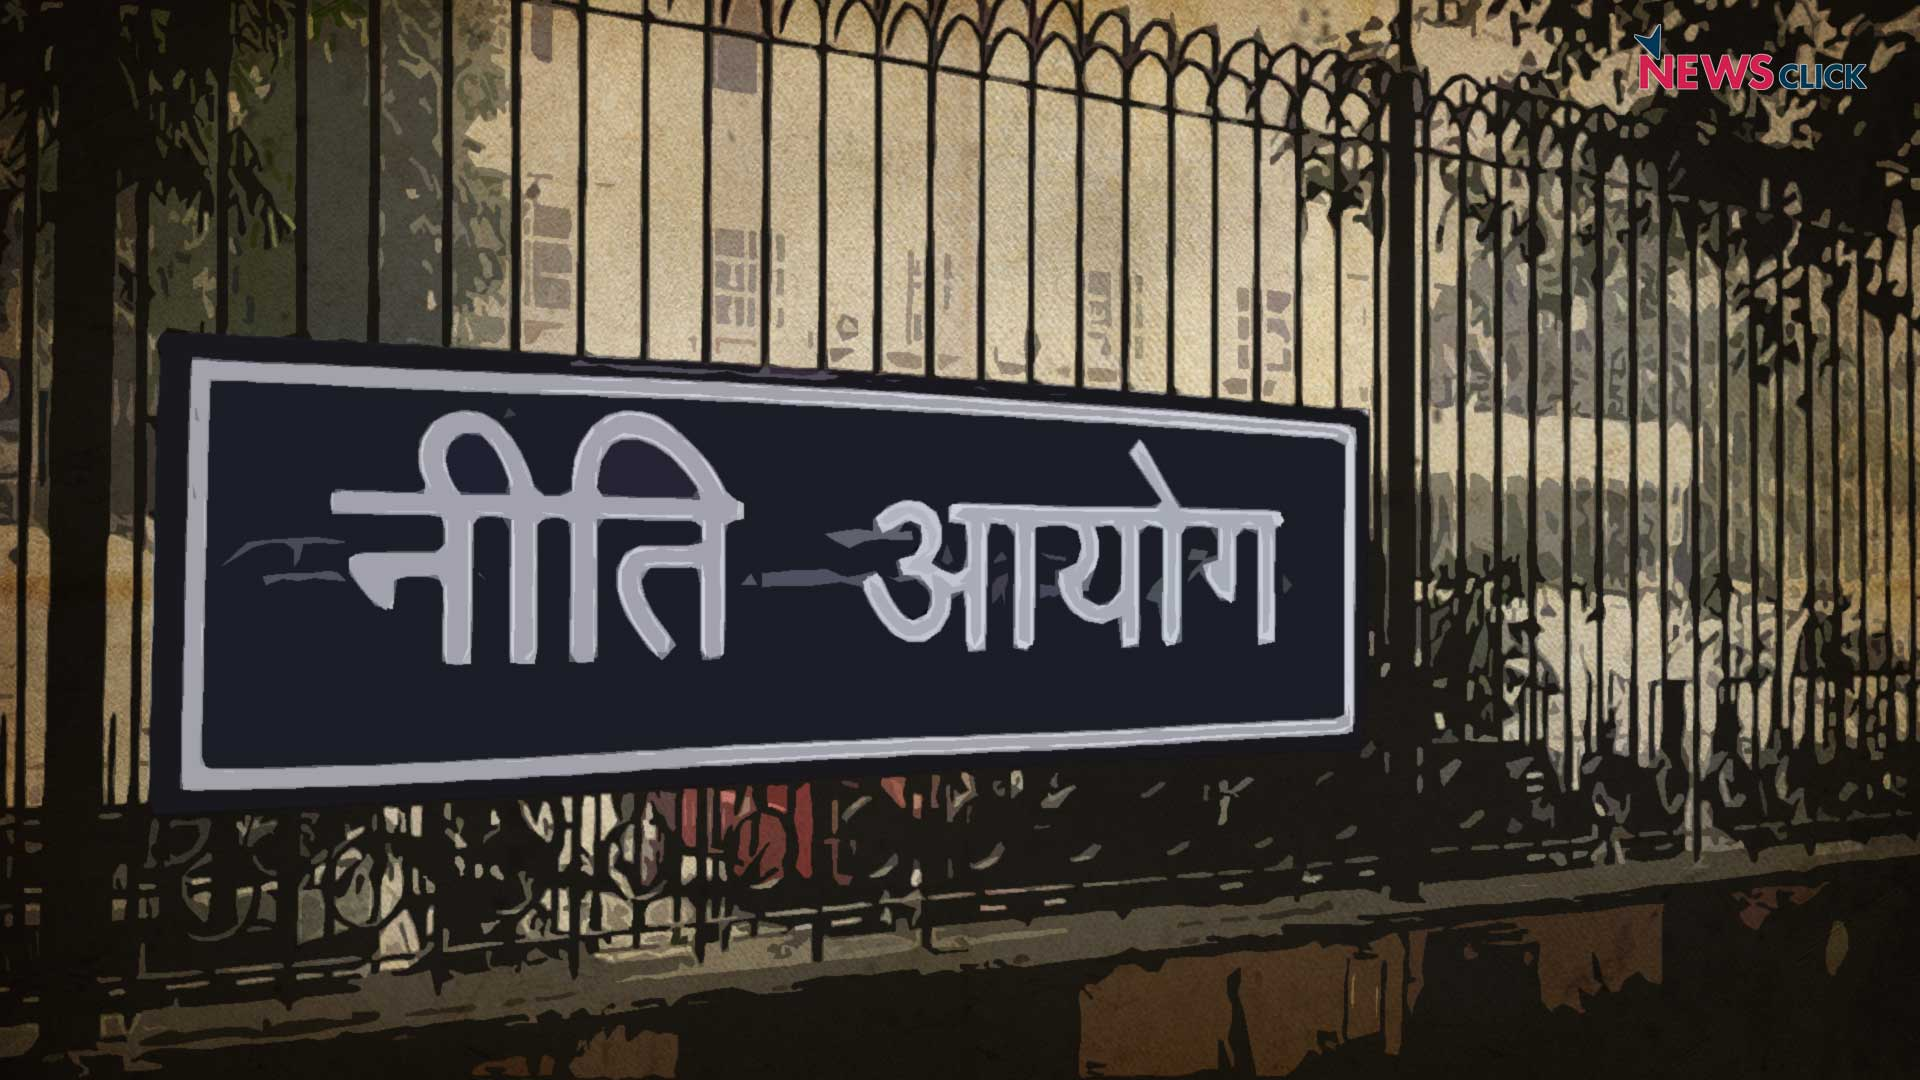 Niti Aayog proposes Rs 7,500-crore plan for Artificial Intelligence development 7